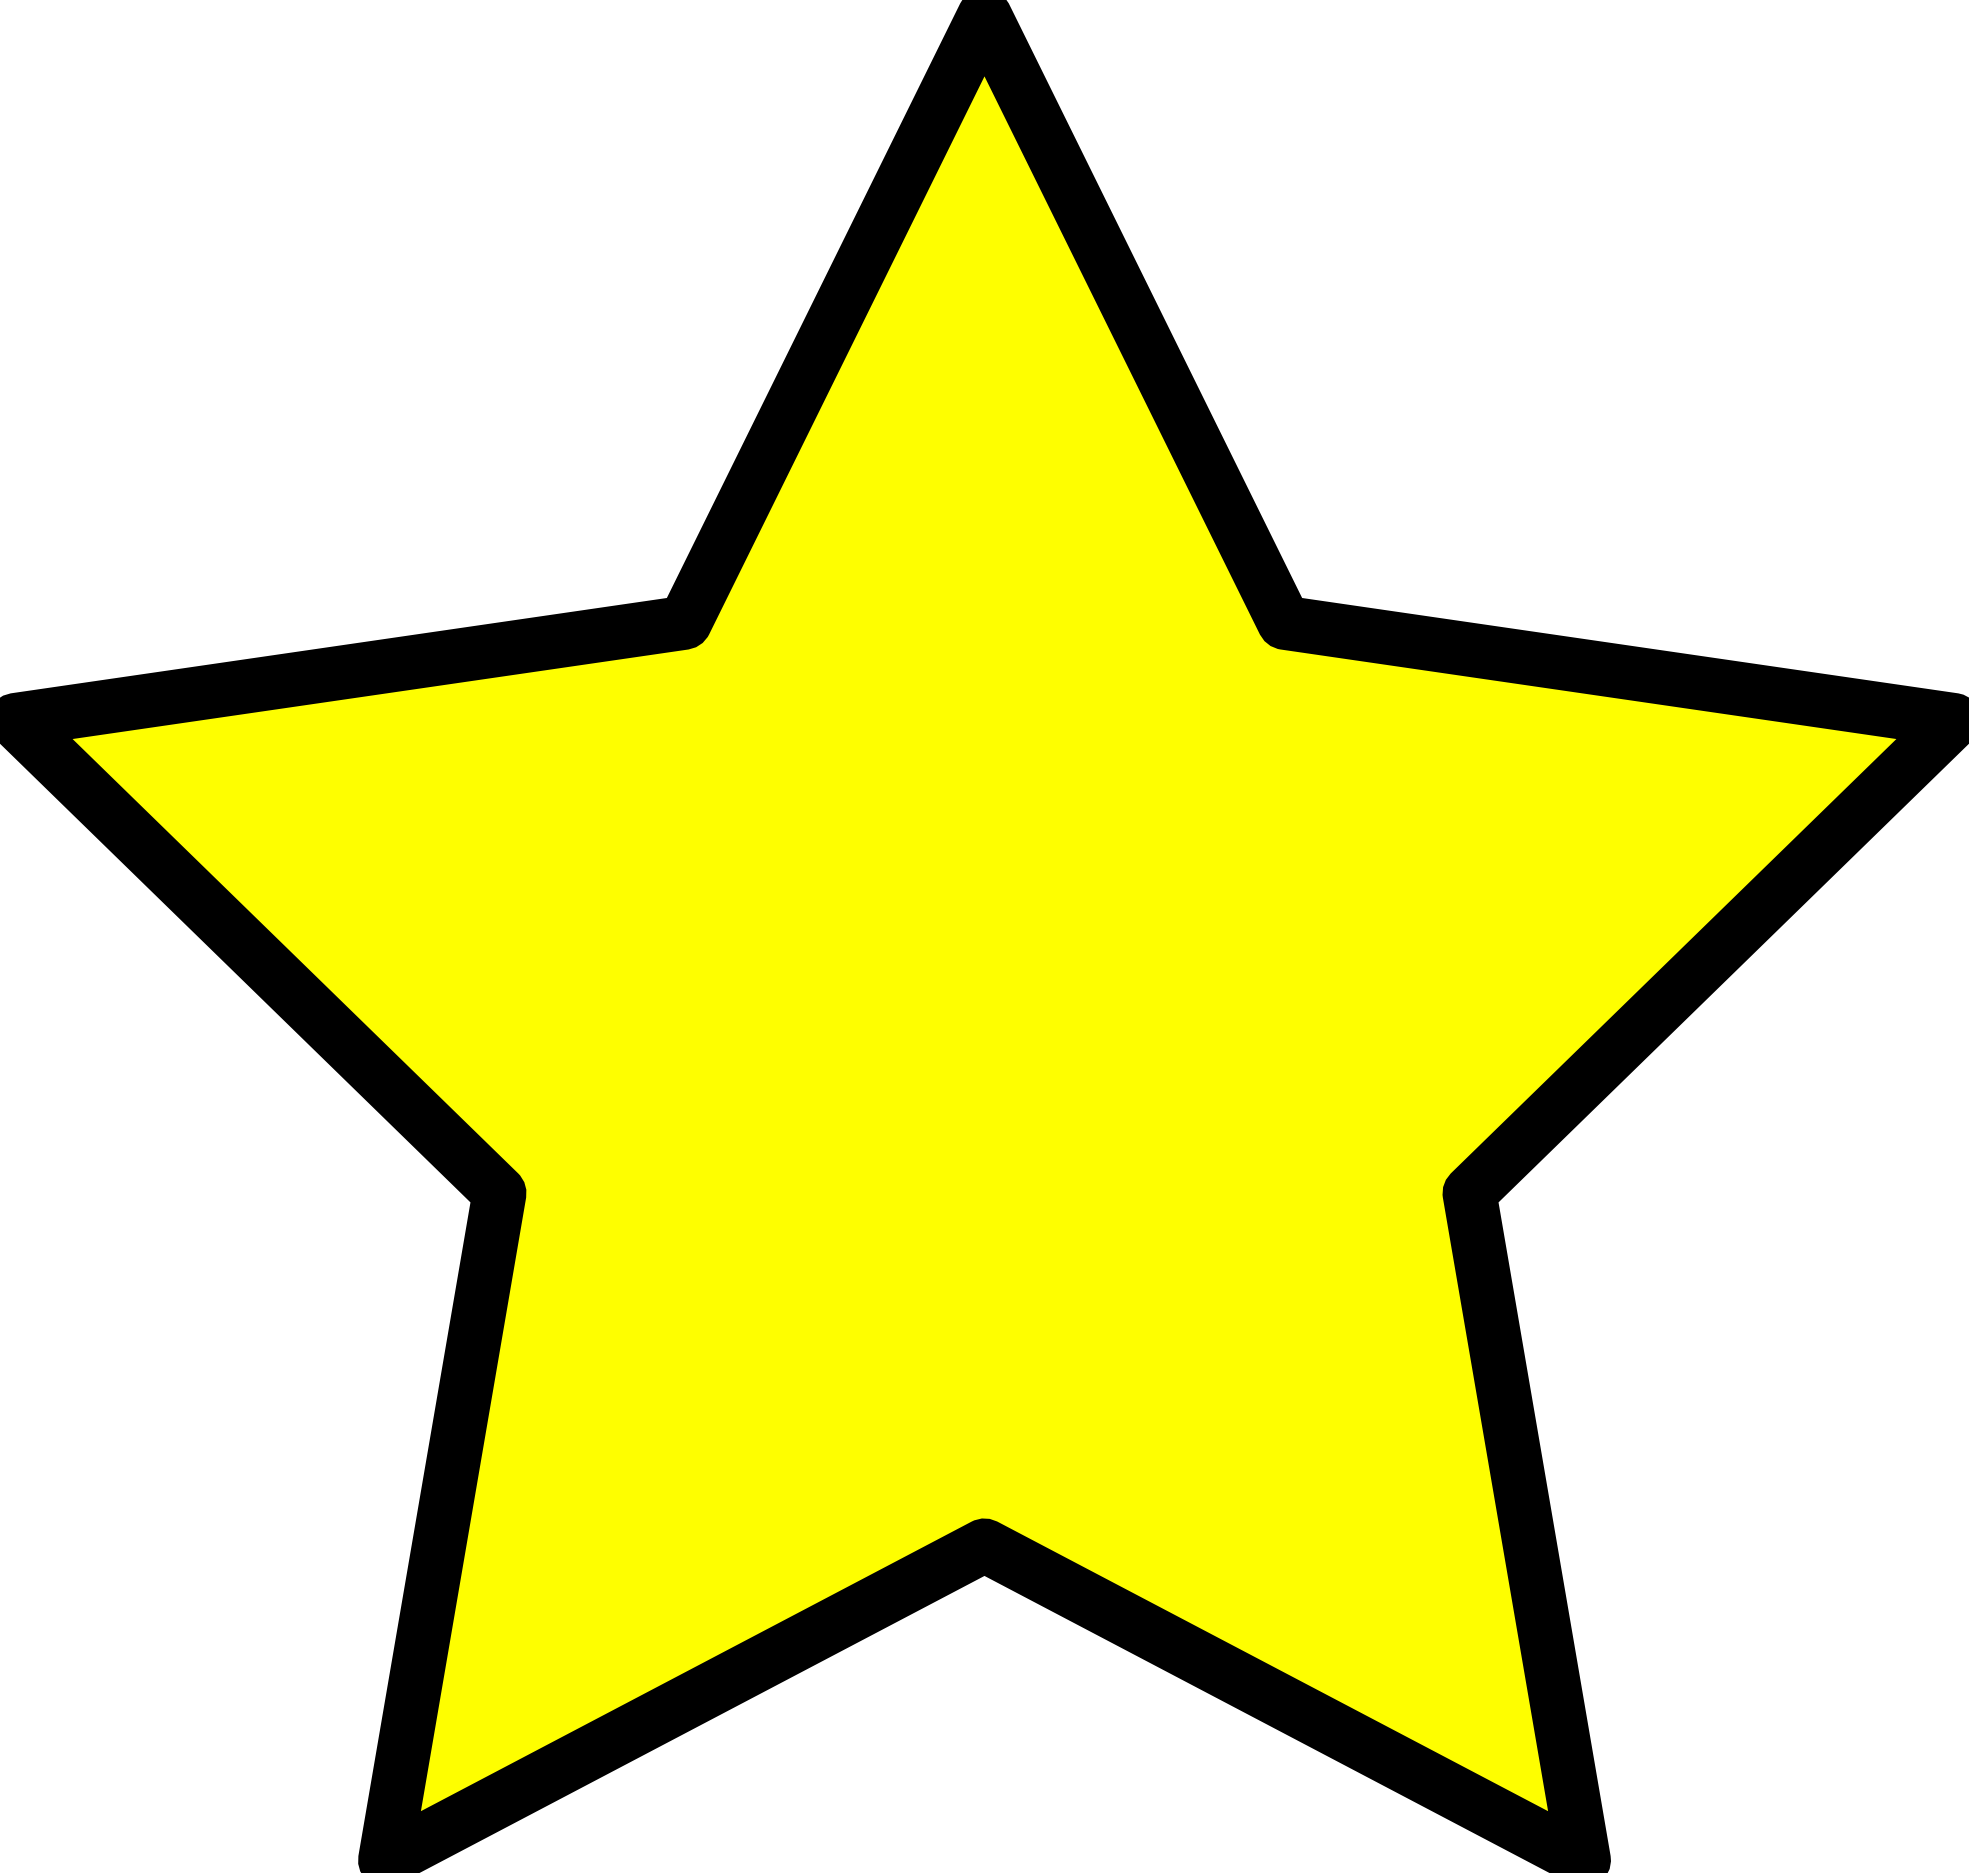 Star clip art free clipart images